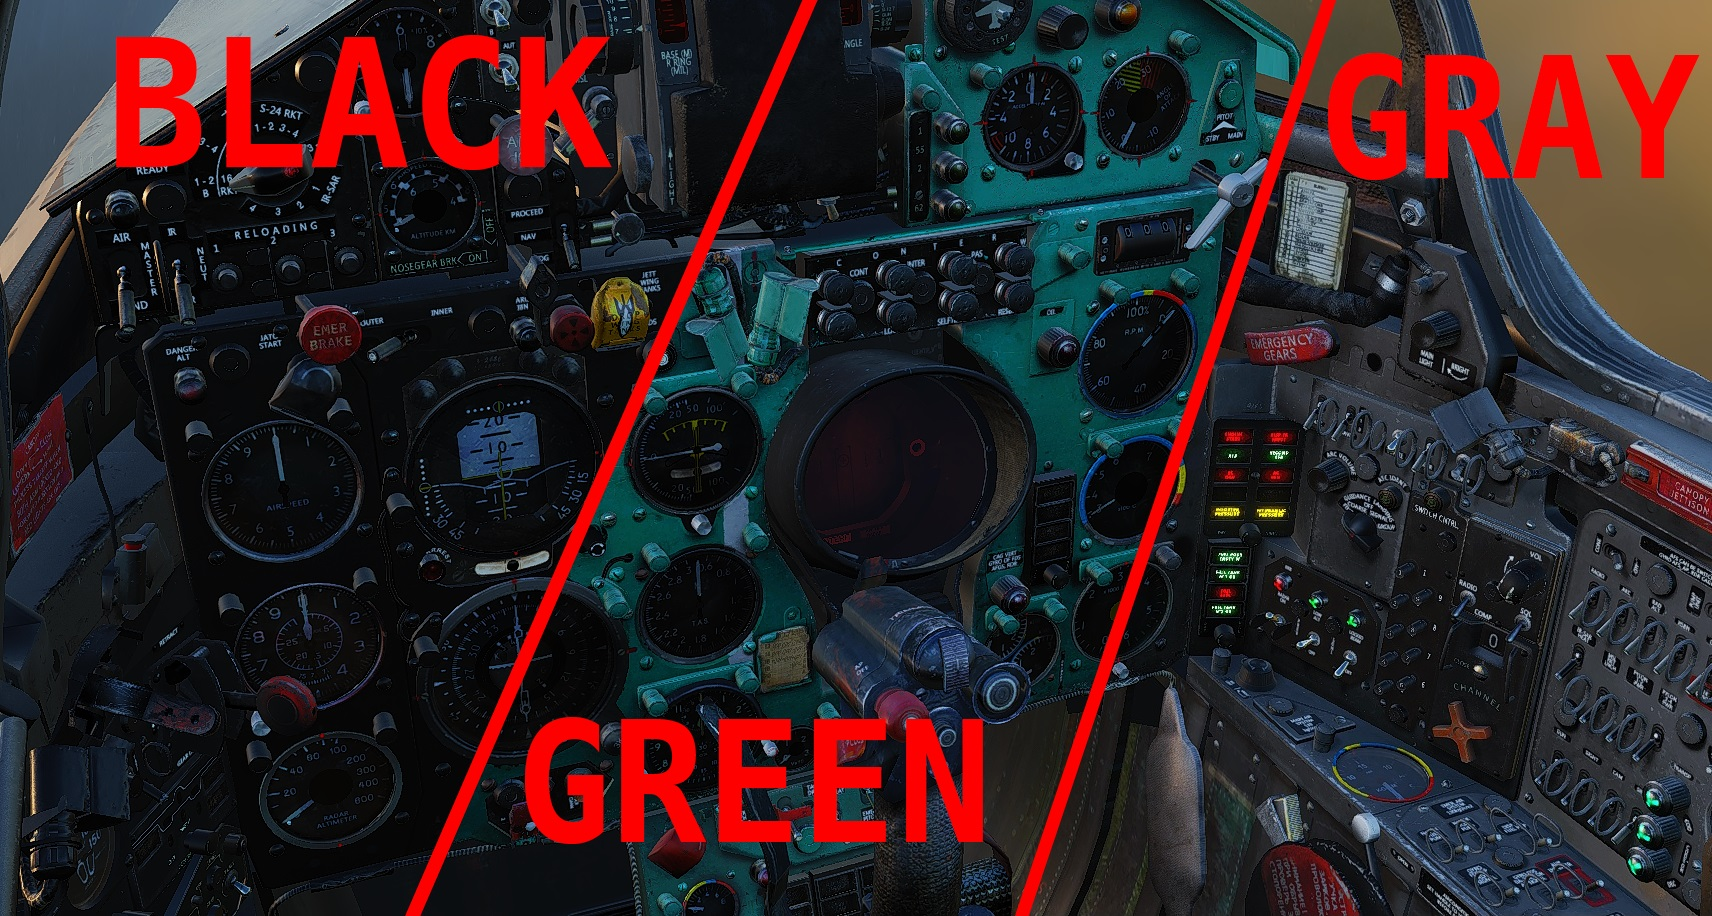 MiG-21 Cockpit mod pack - Green/Gray/Black both in English & Russian